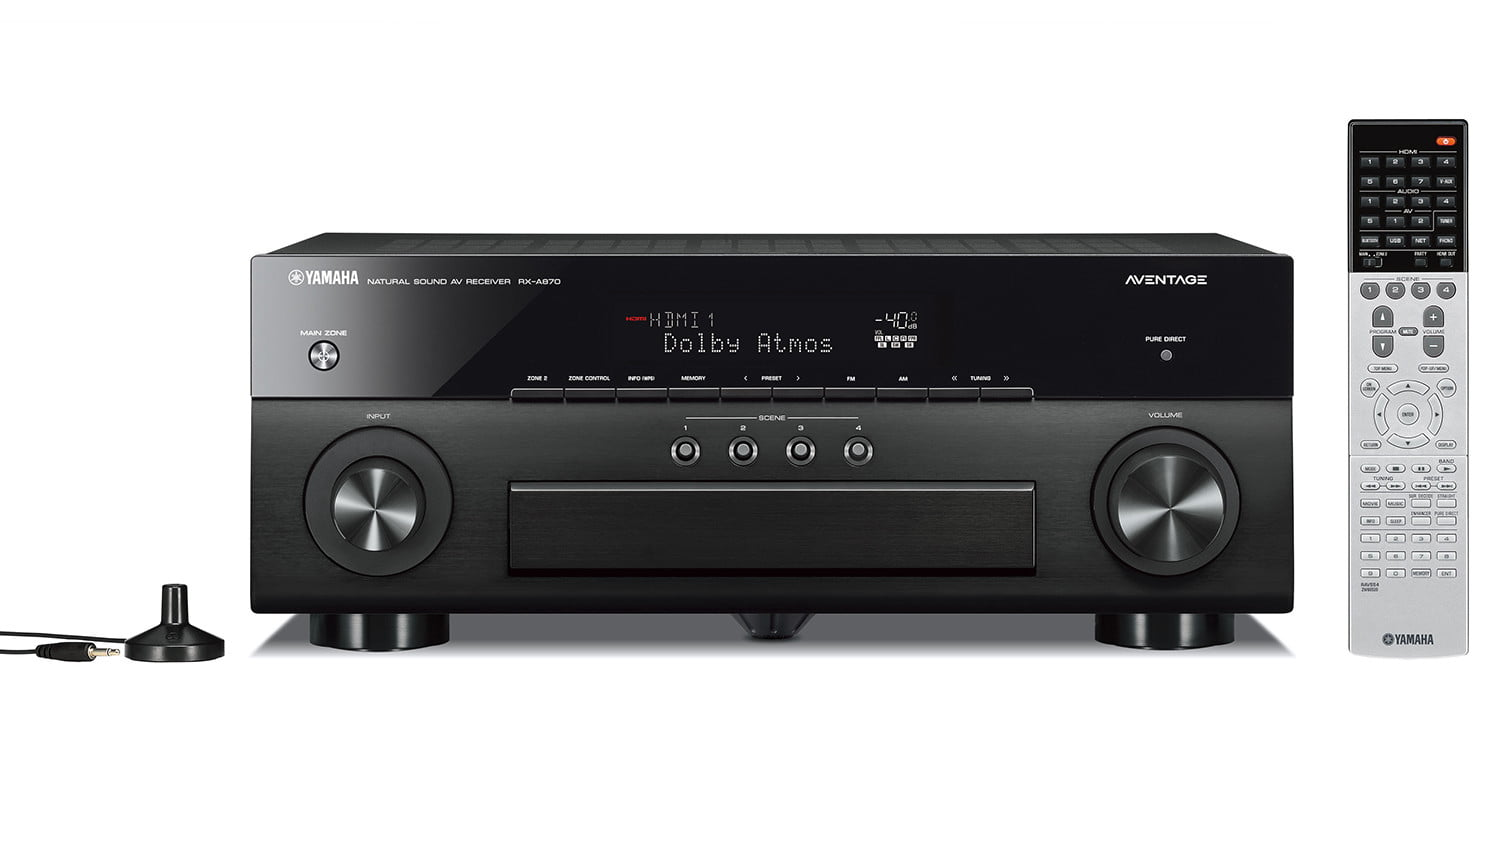 yamaha aventage rx a 70 series receivers 2017 pricing availability rxa870blfructkrl f